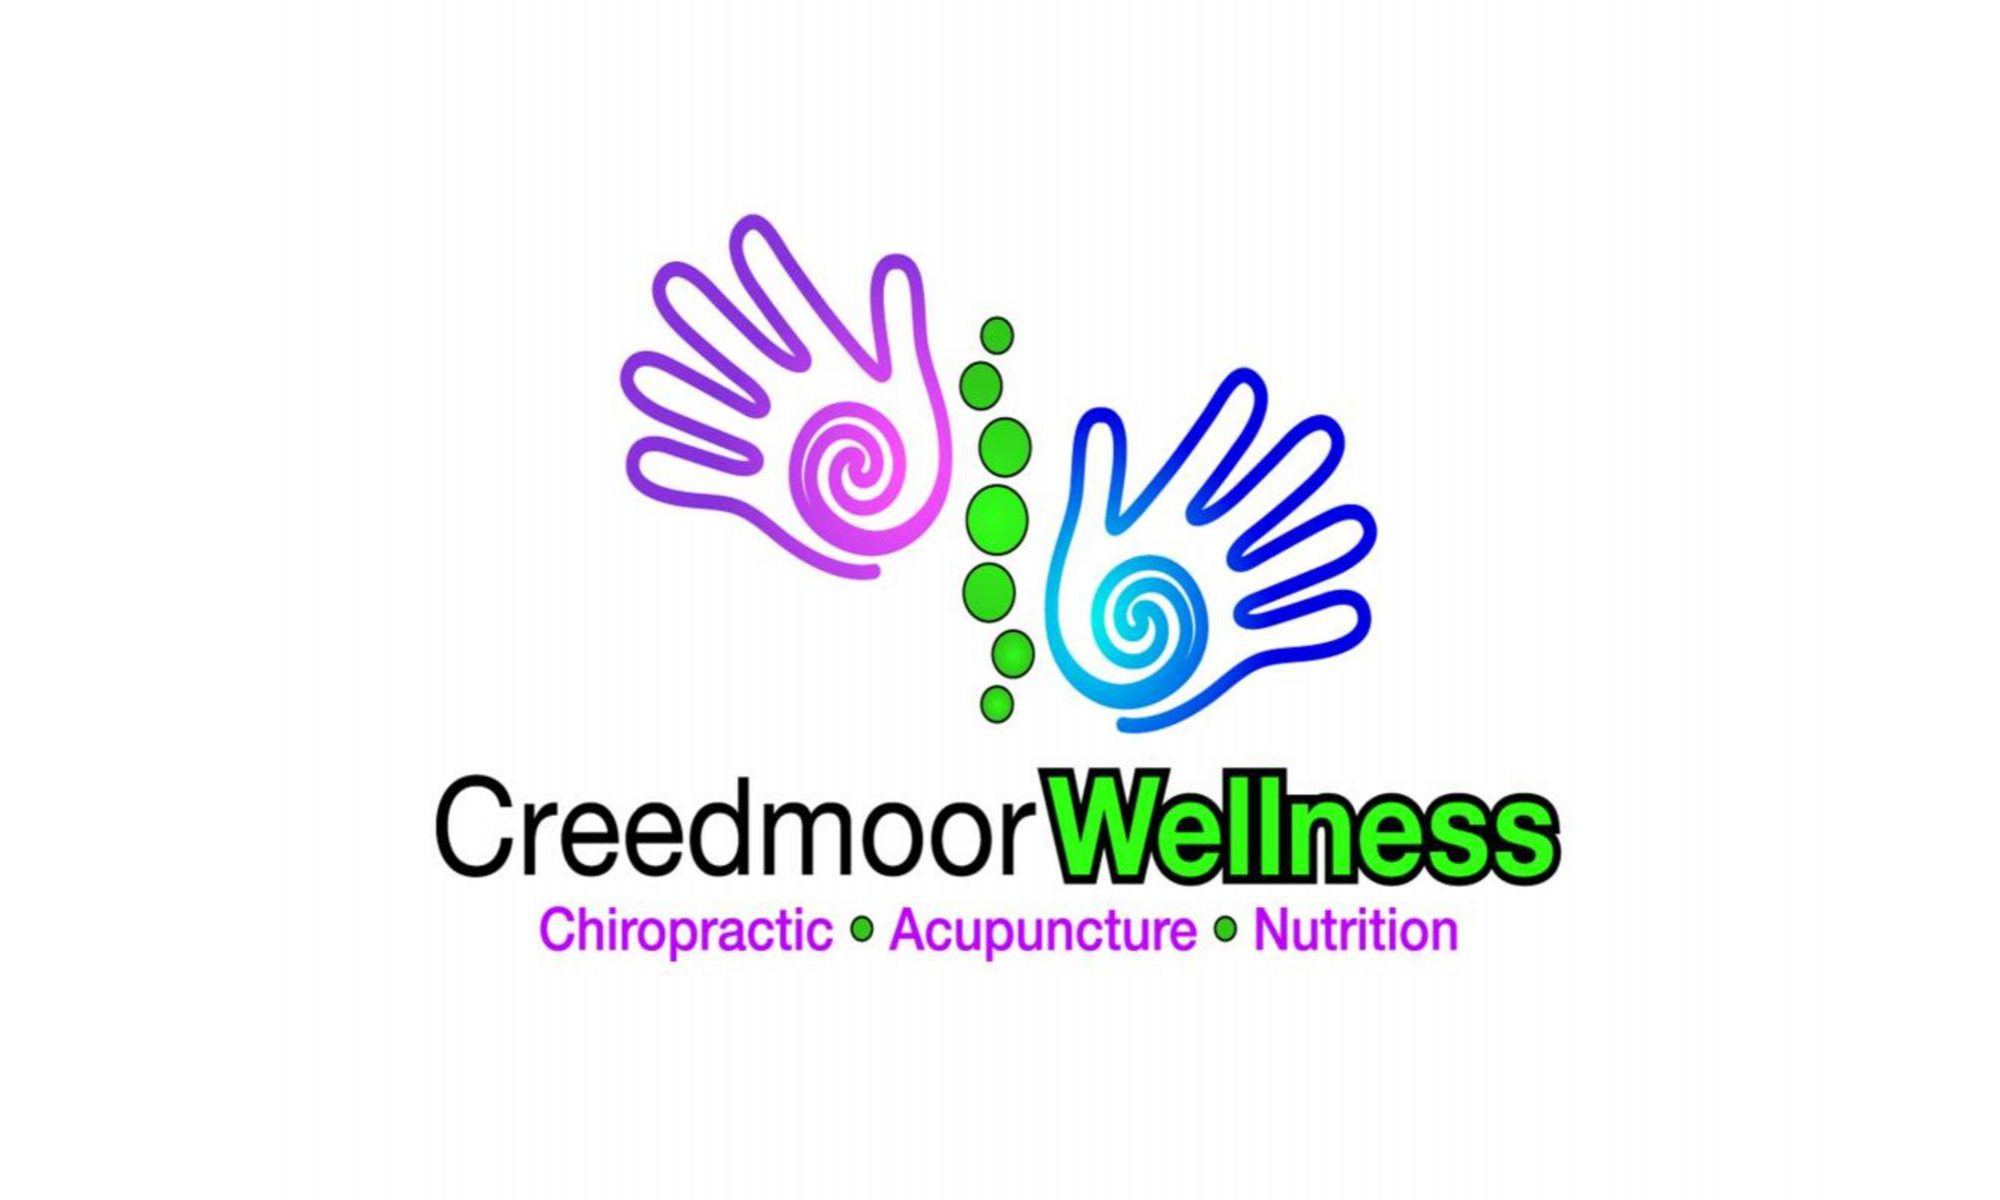 Creedmoor Wellness